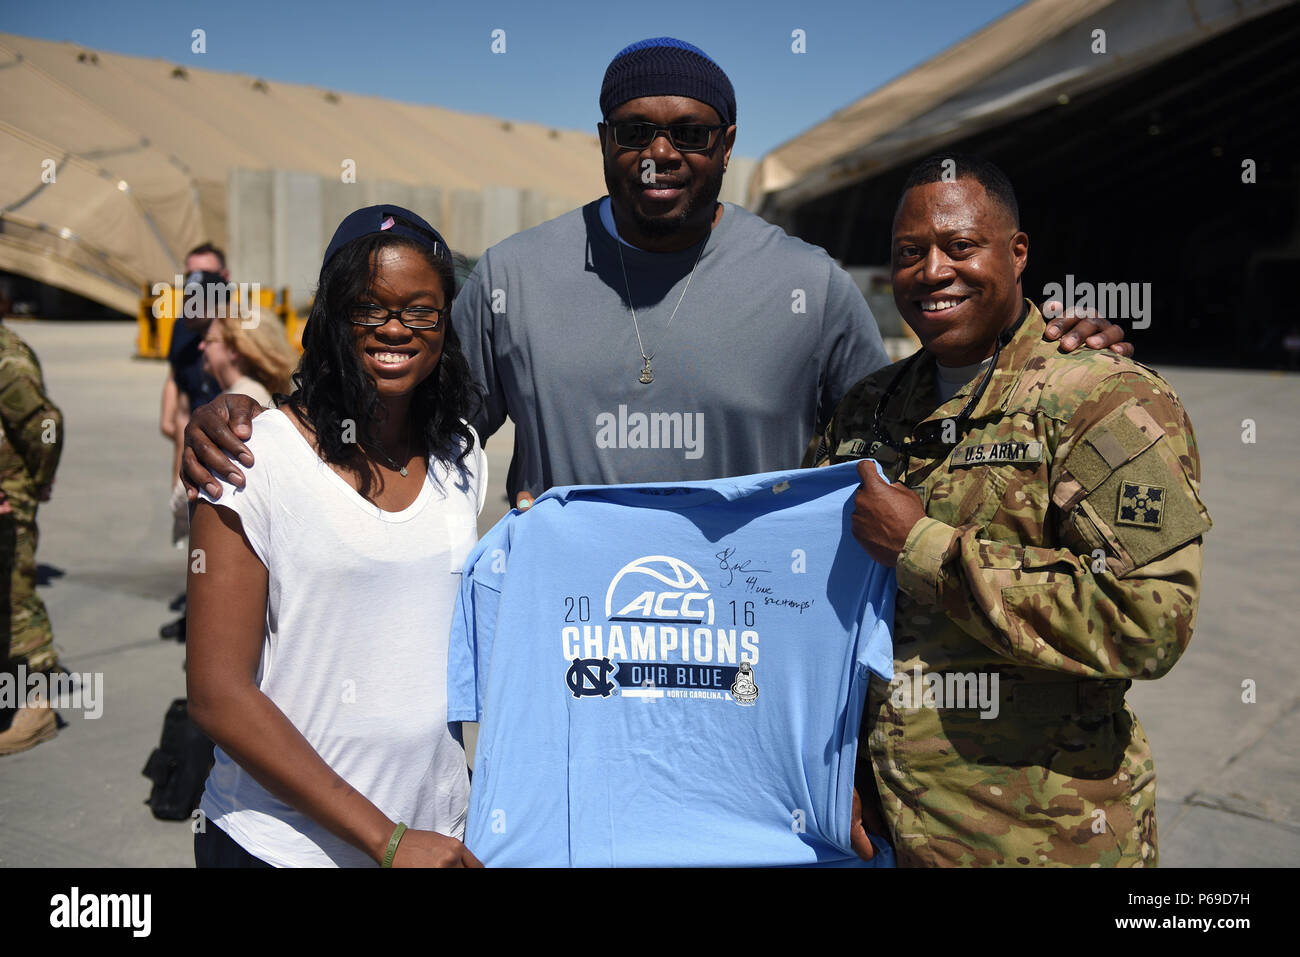 Former NBA player Sam Perkins, who played for the Univesity of North Carolina at Chapel Hill during his college career, poses with a Tar Heel fan and daughter China Perkins in Afghanistan as Army Gen. Frank Grass, chief, National Guard Bureau, leads the first-ever National Guard USO Tour, May 19, 2016. (U.S. Army National Guard photo by Sgt. 1st Class Jim Greenhill) (Released) Stock Photo